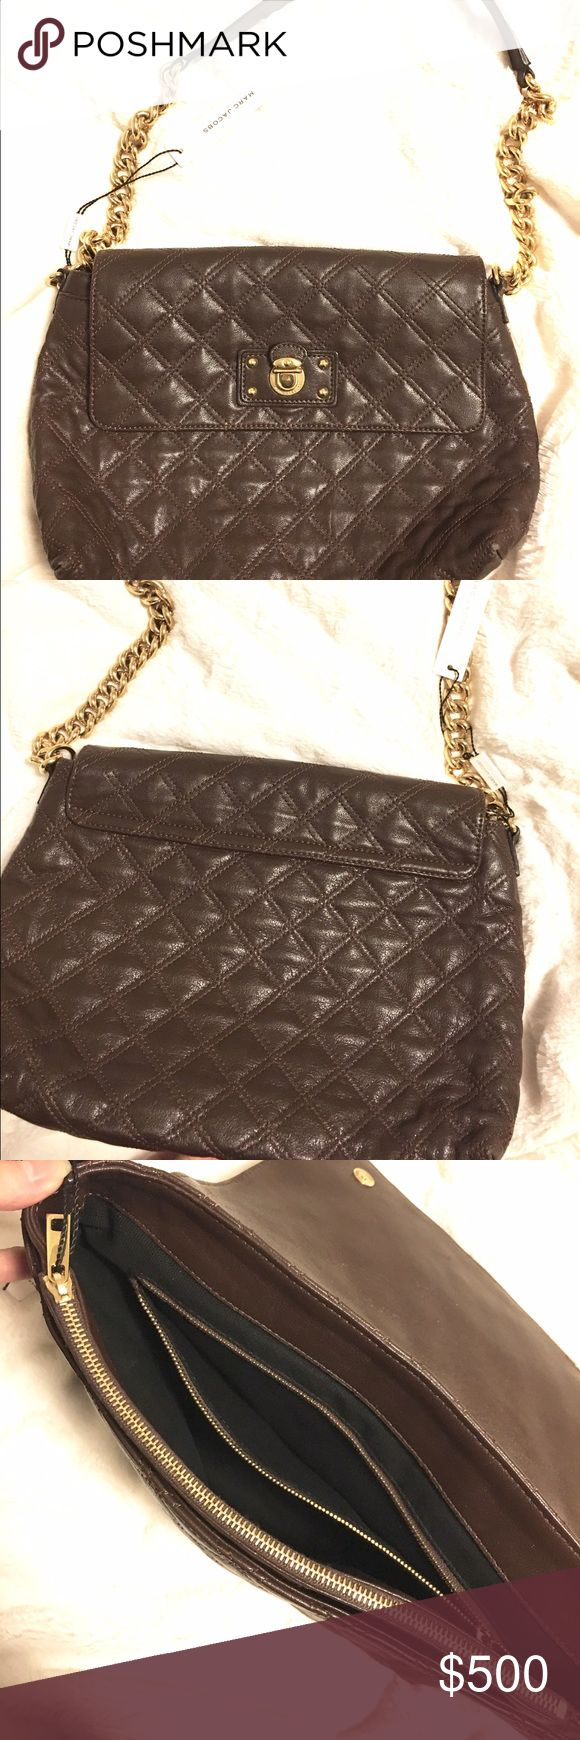 """*Brand New* Marc Jacobs 